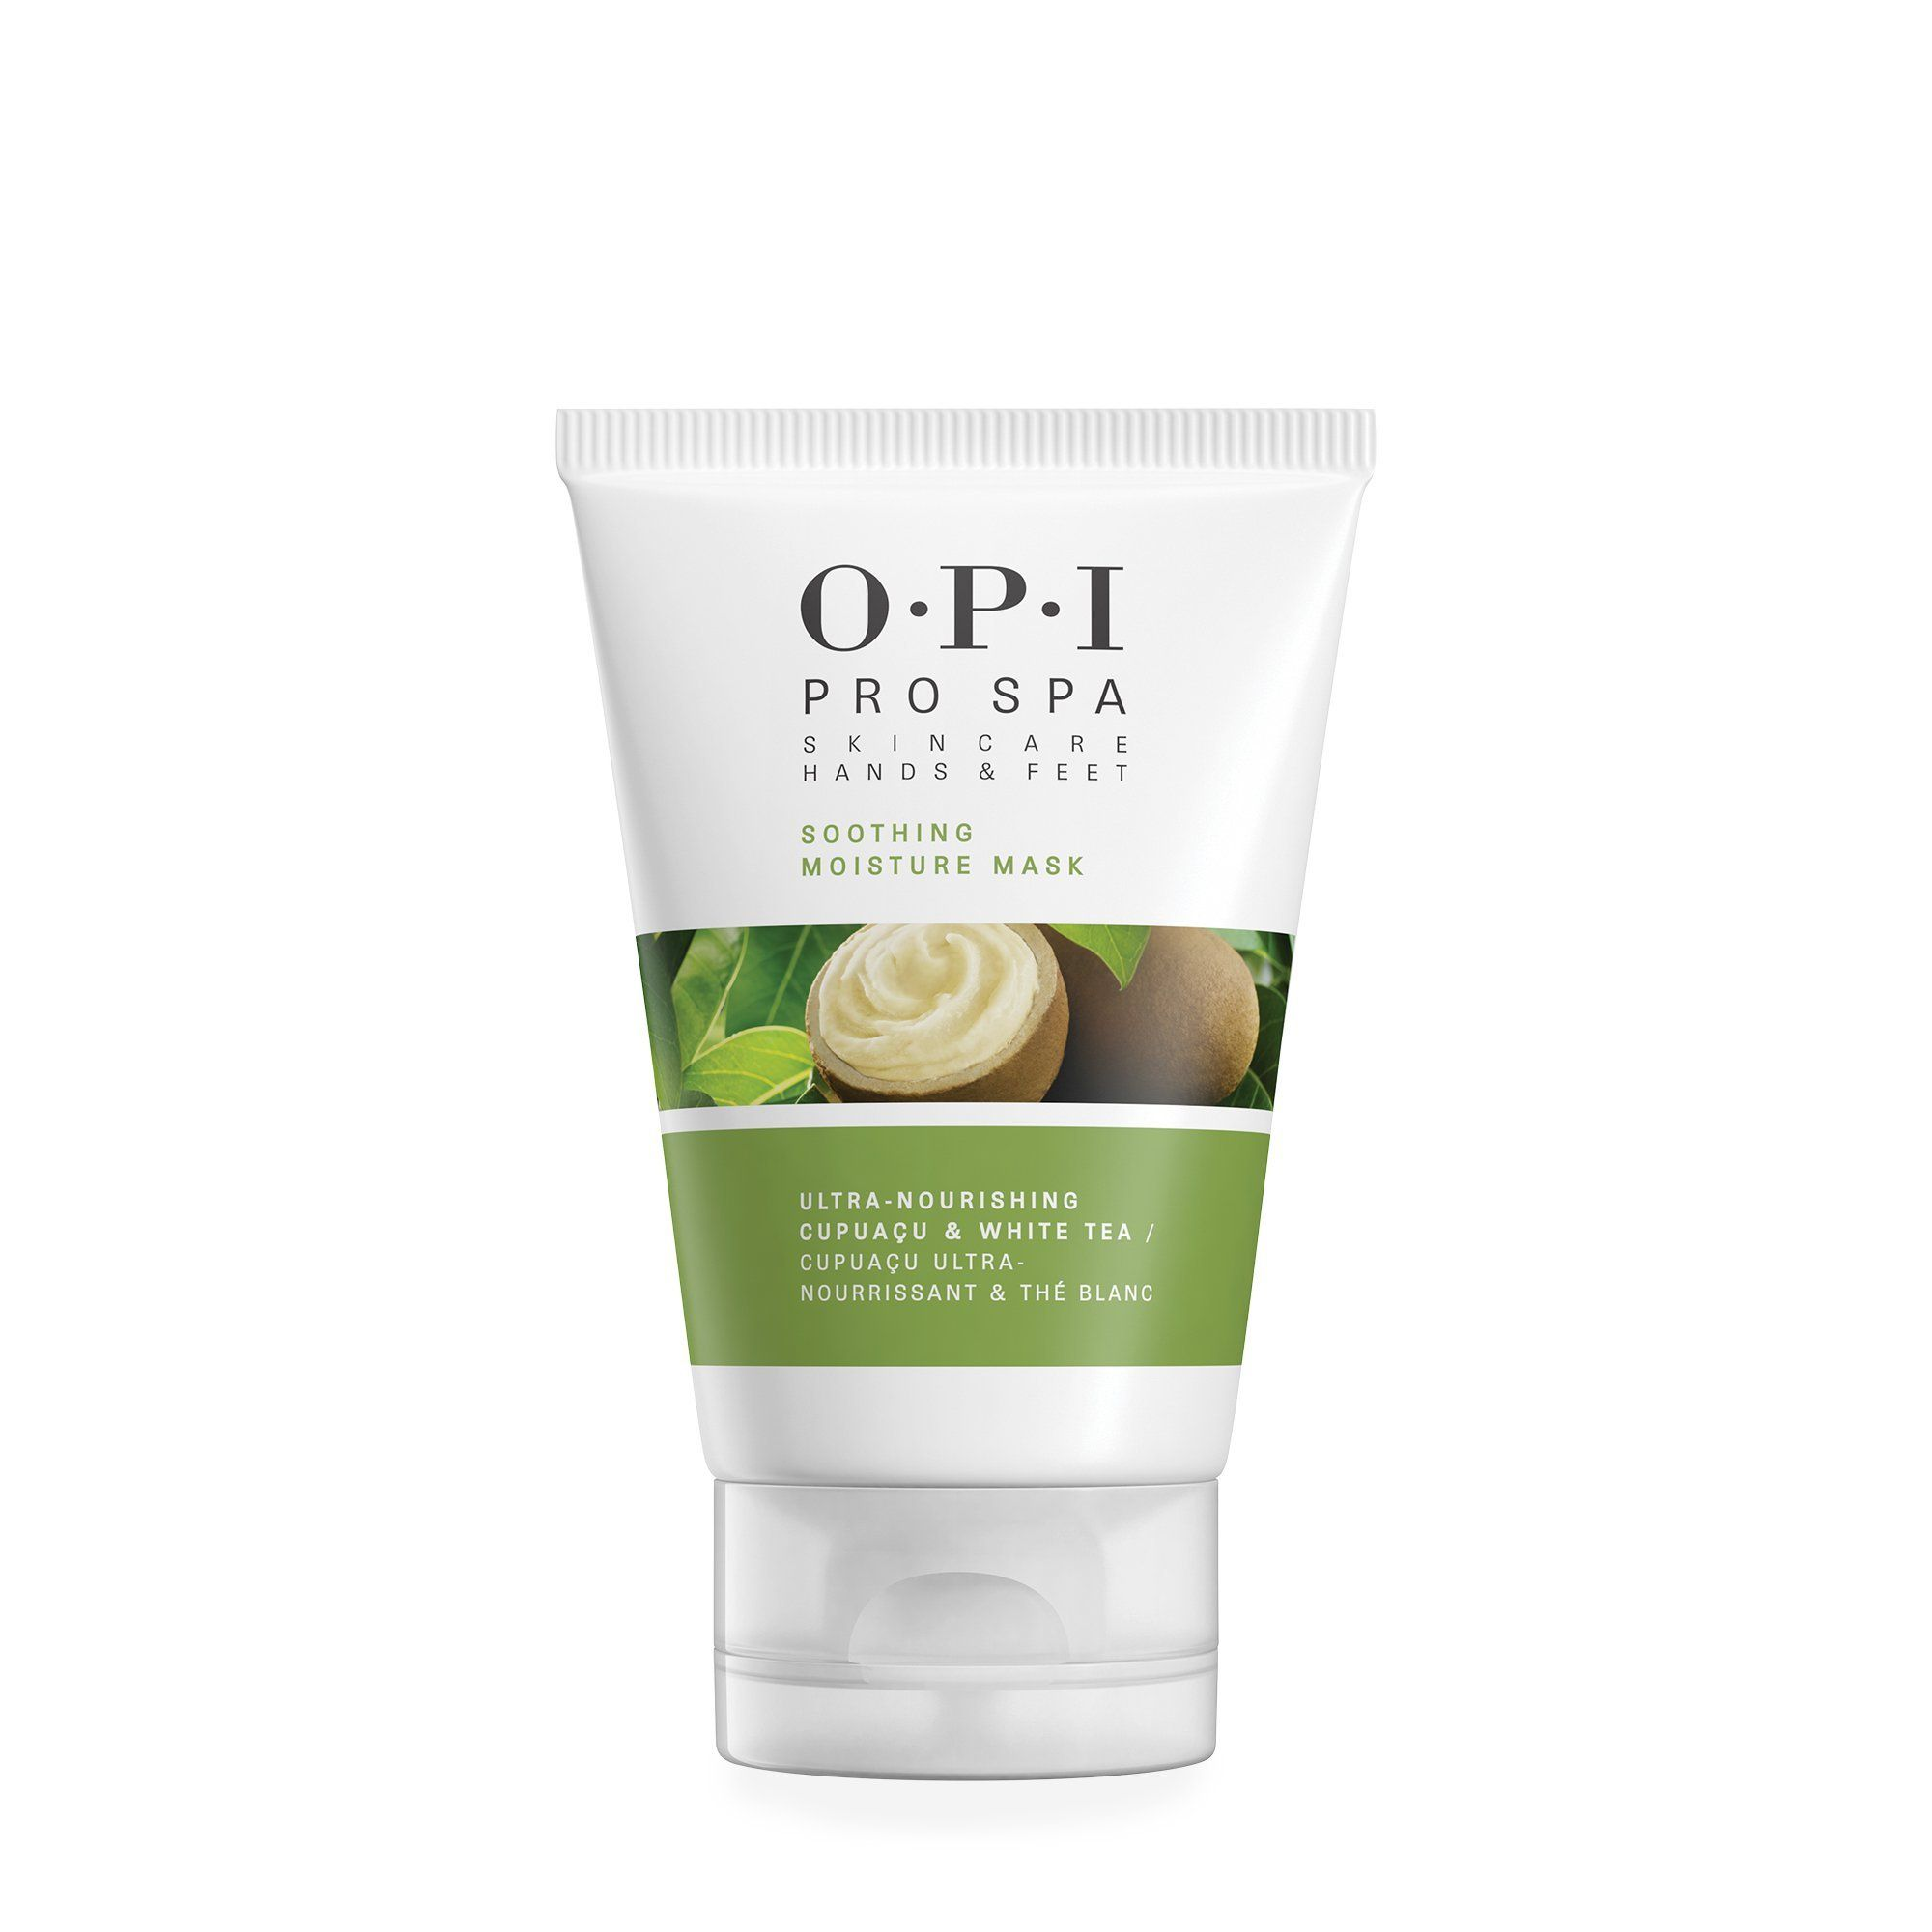 Opi Soothing Moisture Mask Professional Skin Care Products Lotion For Dry Skin Moisturizer